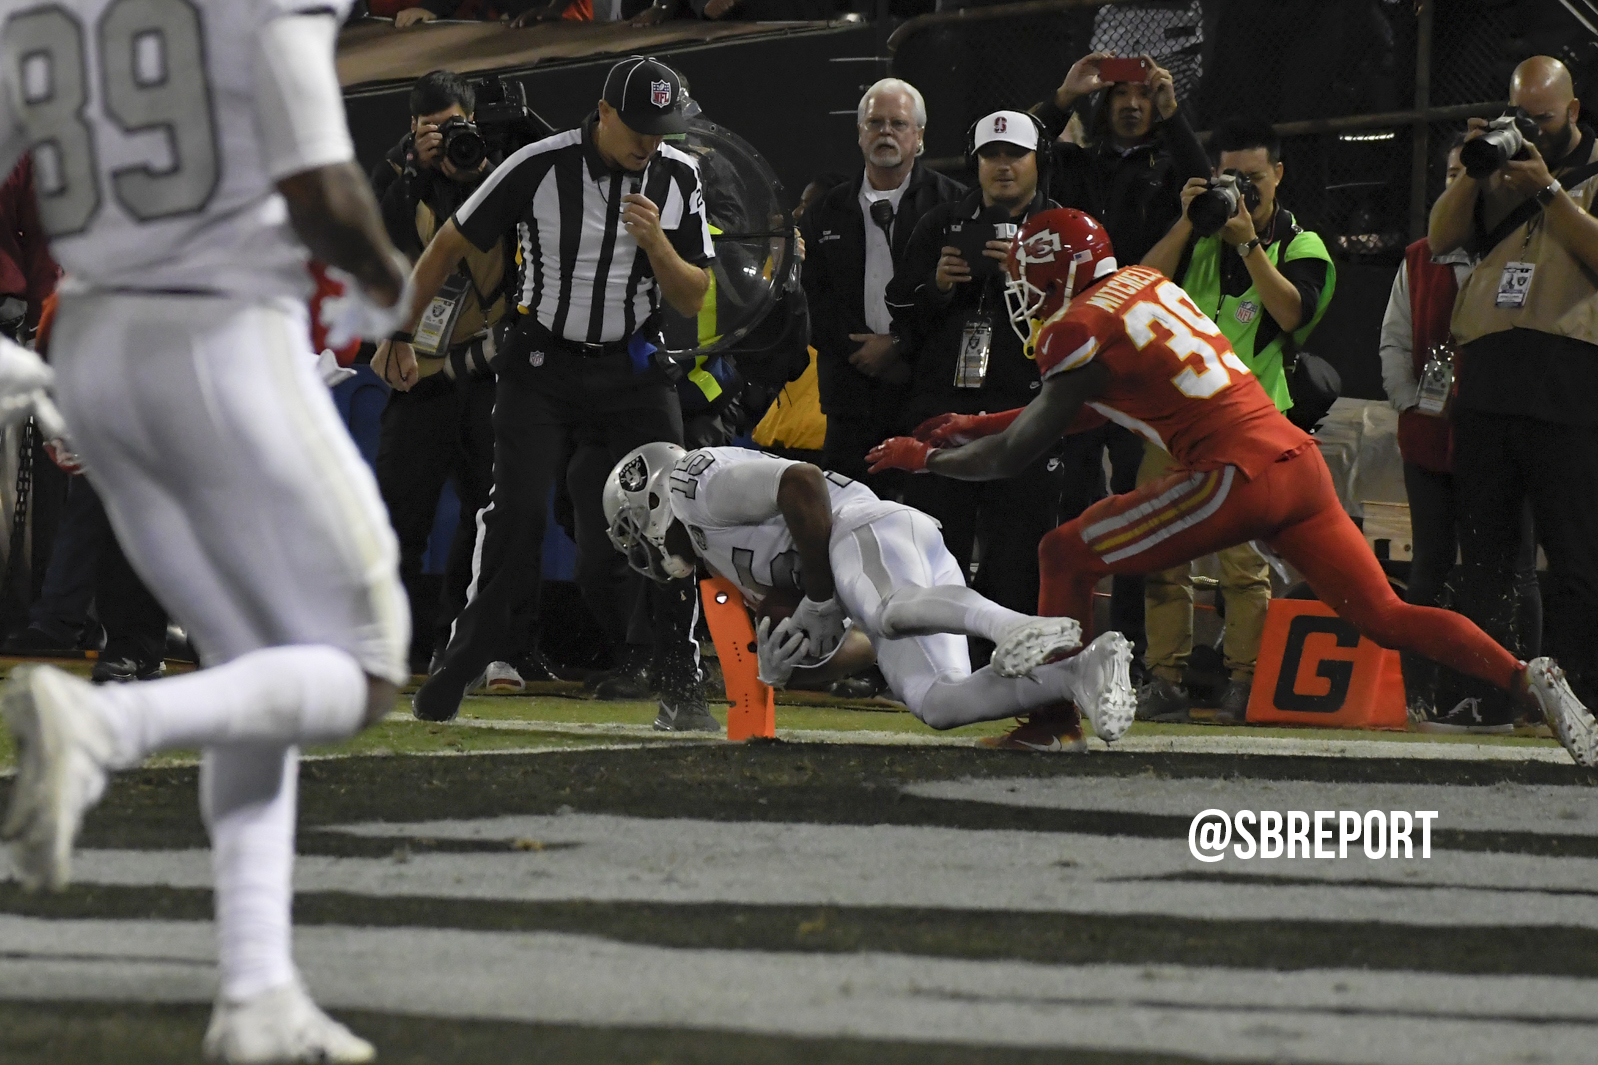 Raiders save season in wild ending against Chiefs